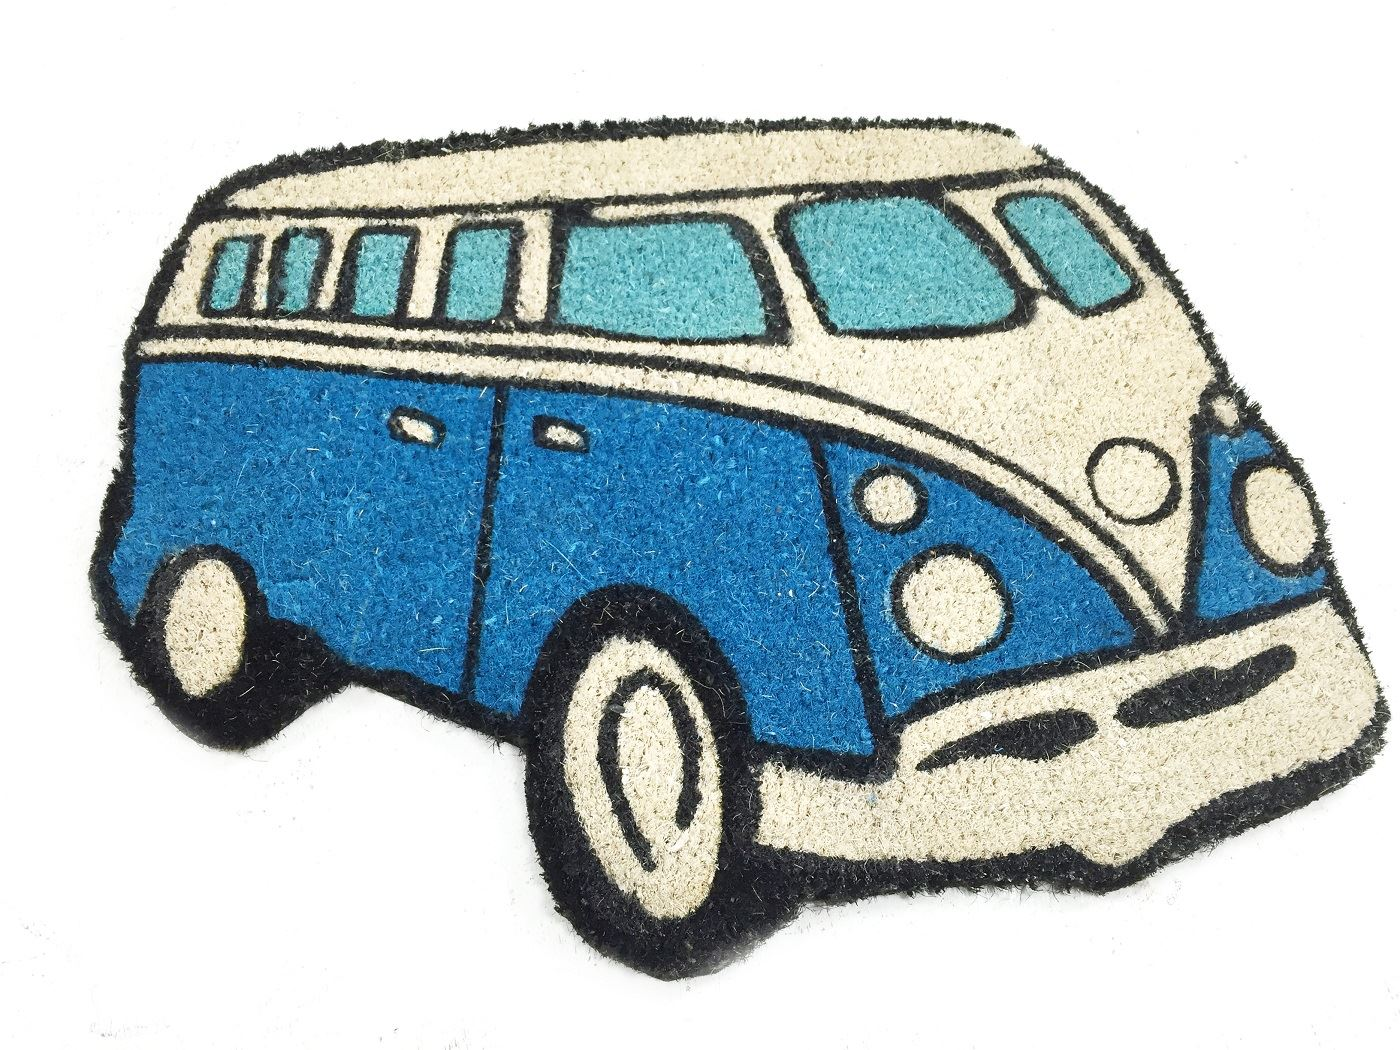 50x65cm Vw Campervan Shaped Design Indoor Outdoor Coir